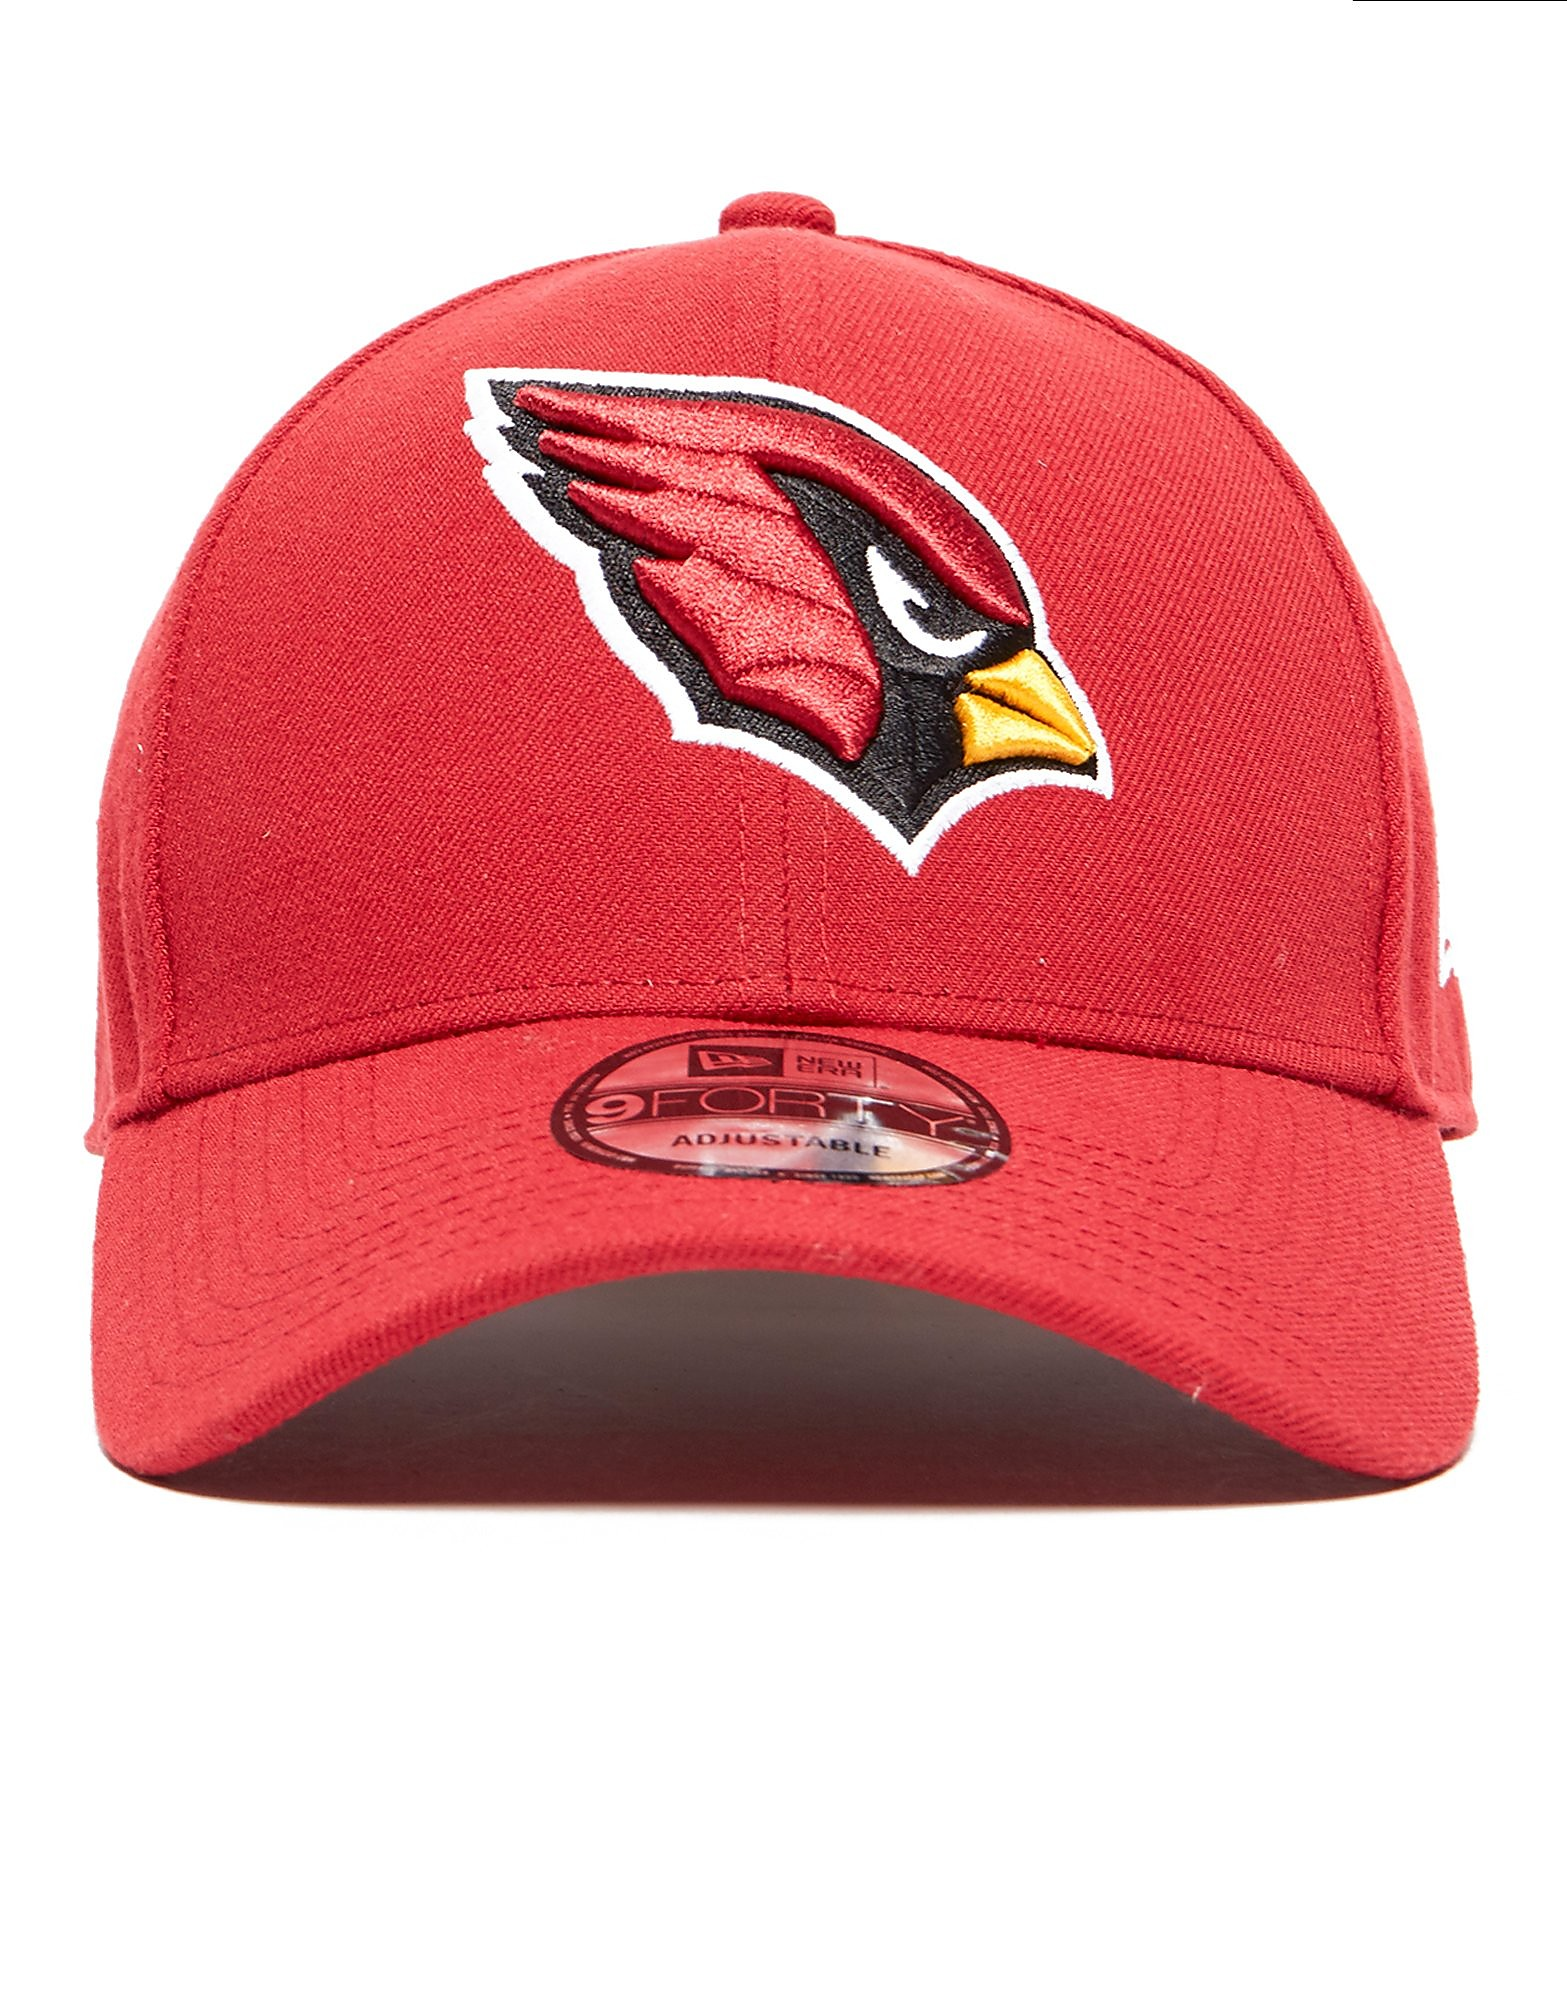 New Era Arizona Cardinals 9FORTY Cap